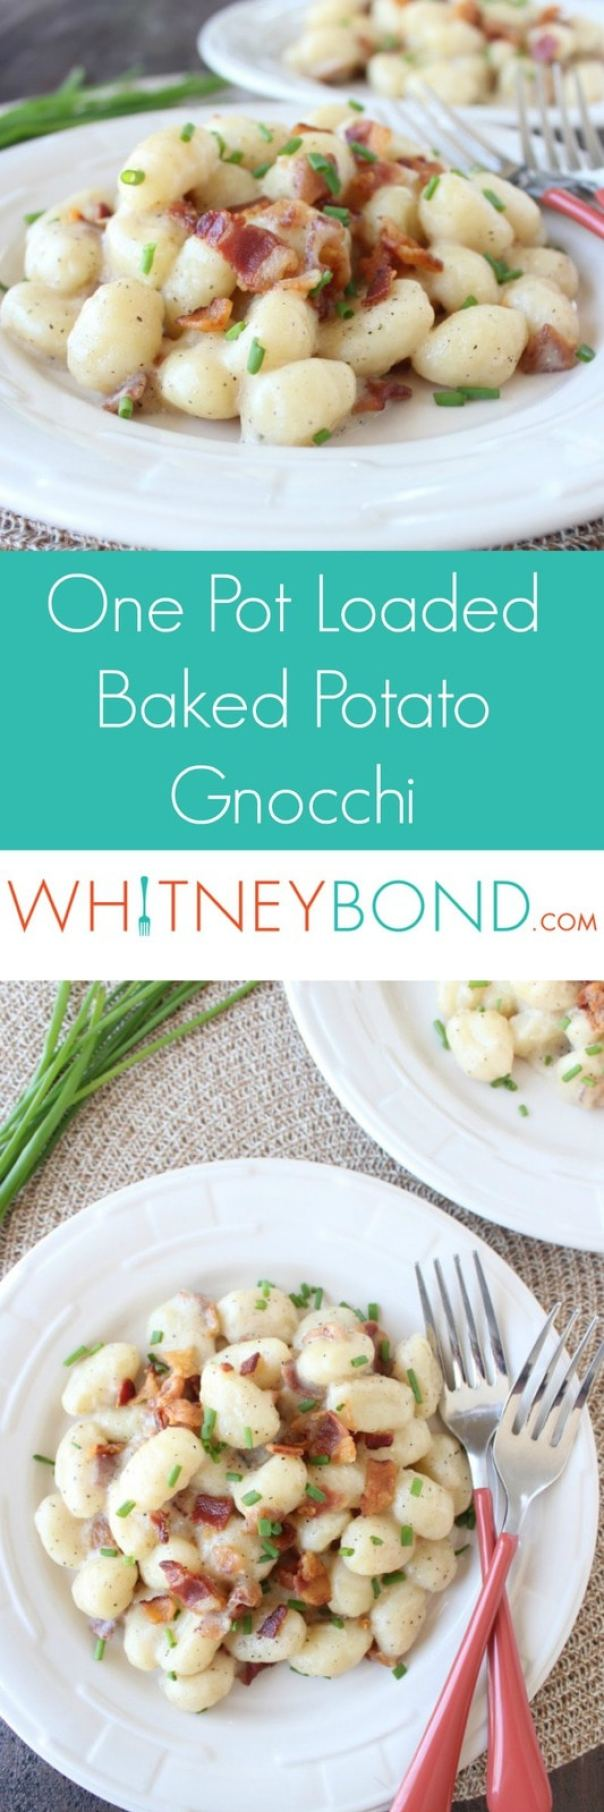 One Pot Loaded Baked Potato Gnocchi Recipe